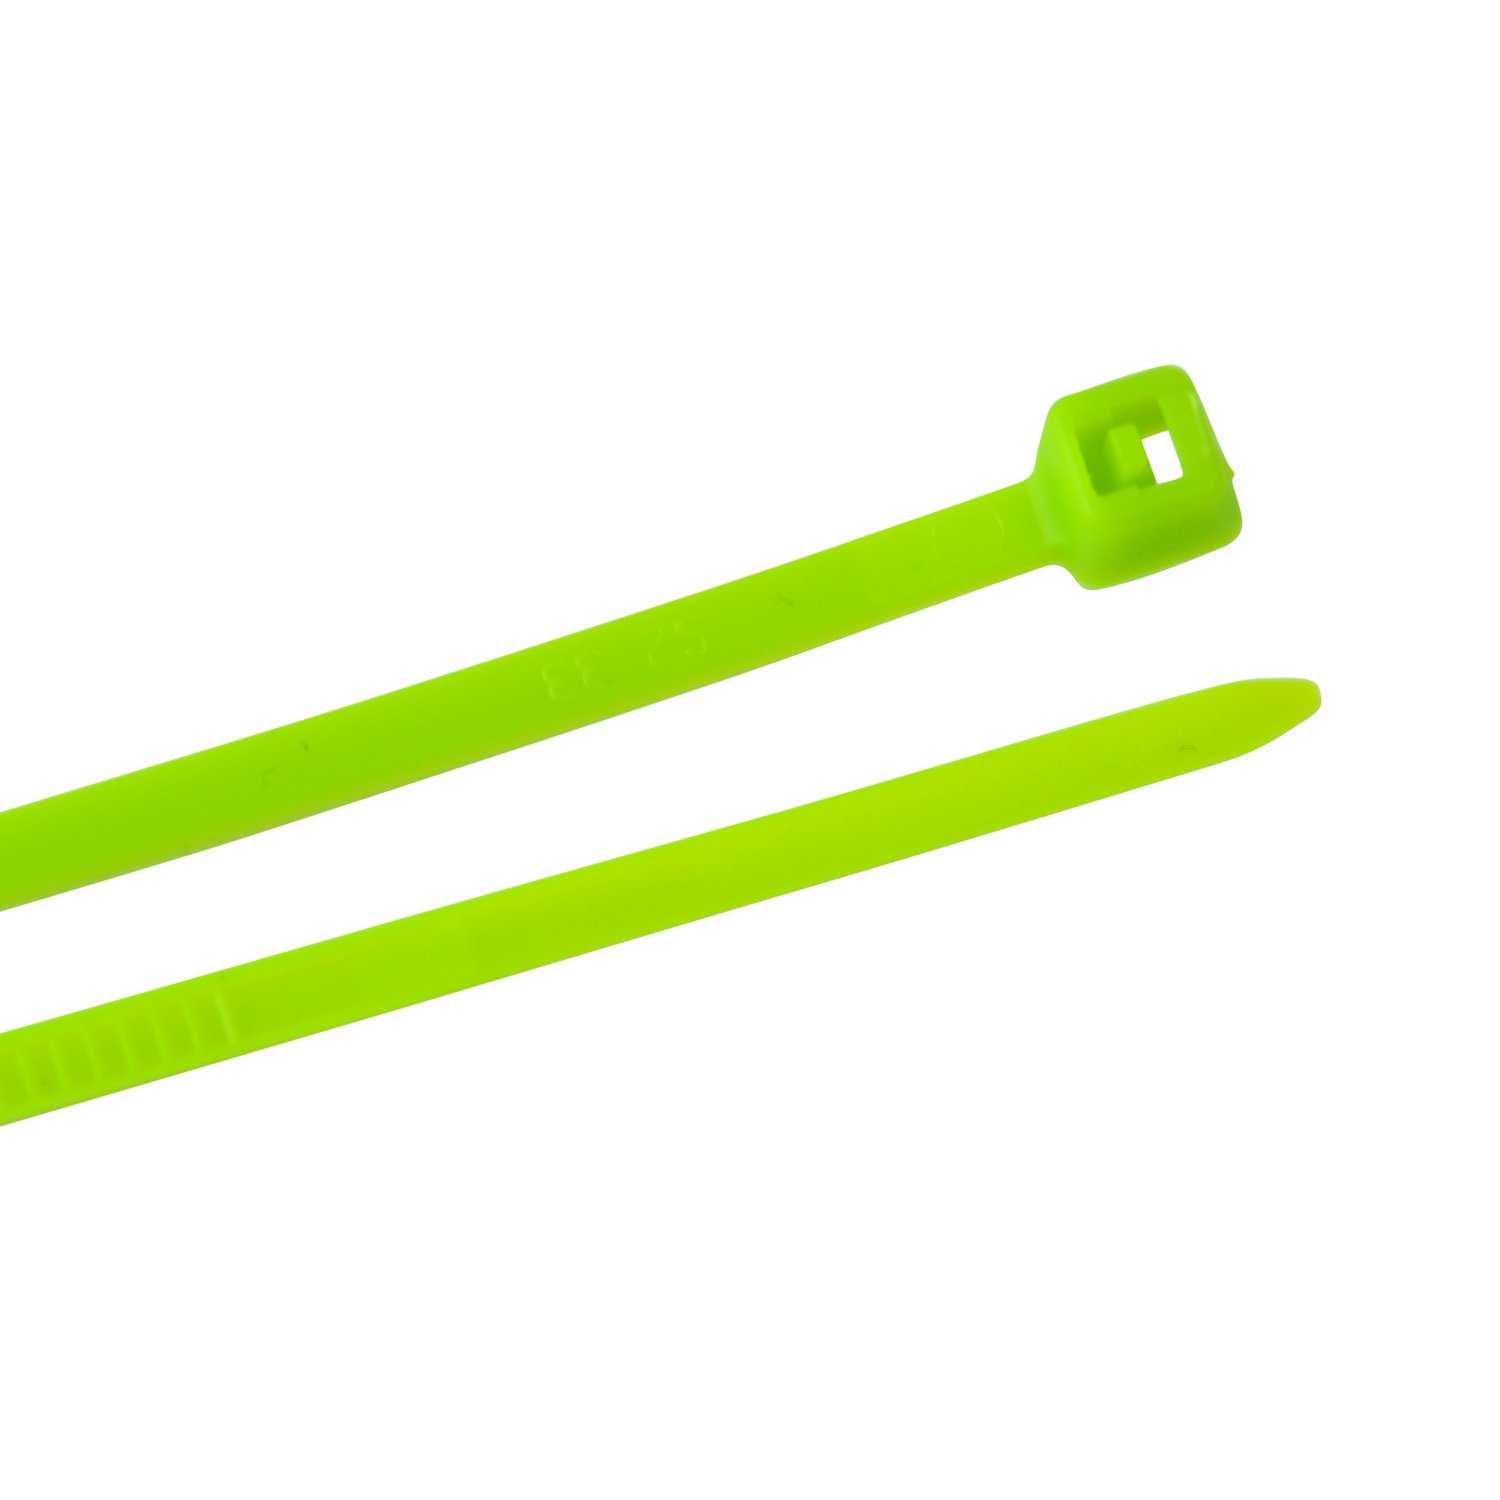 Creative Solutions CS-108G Cable Tie, 8 in, 18 lb, Craft, Wrap & Decorate, Zip Tie, 25 Pk., Green